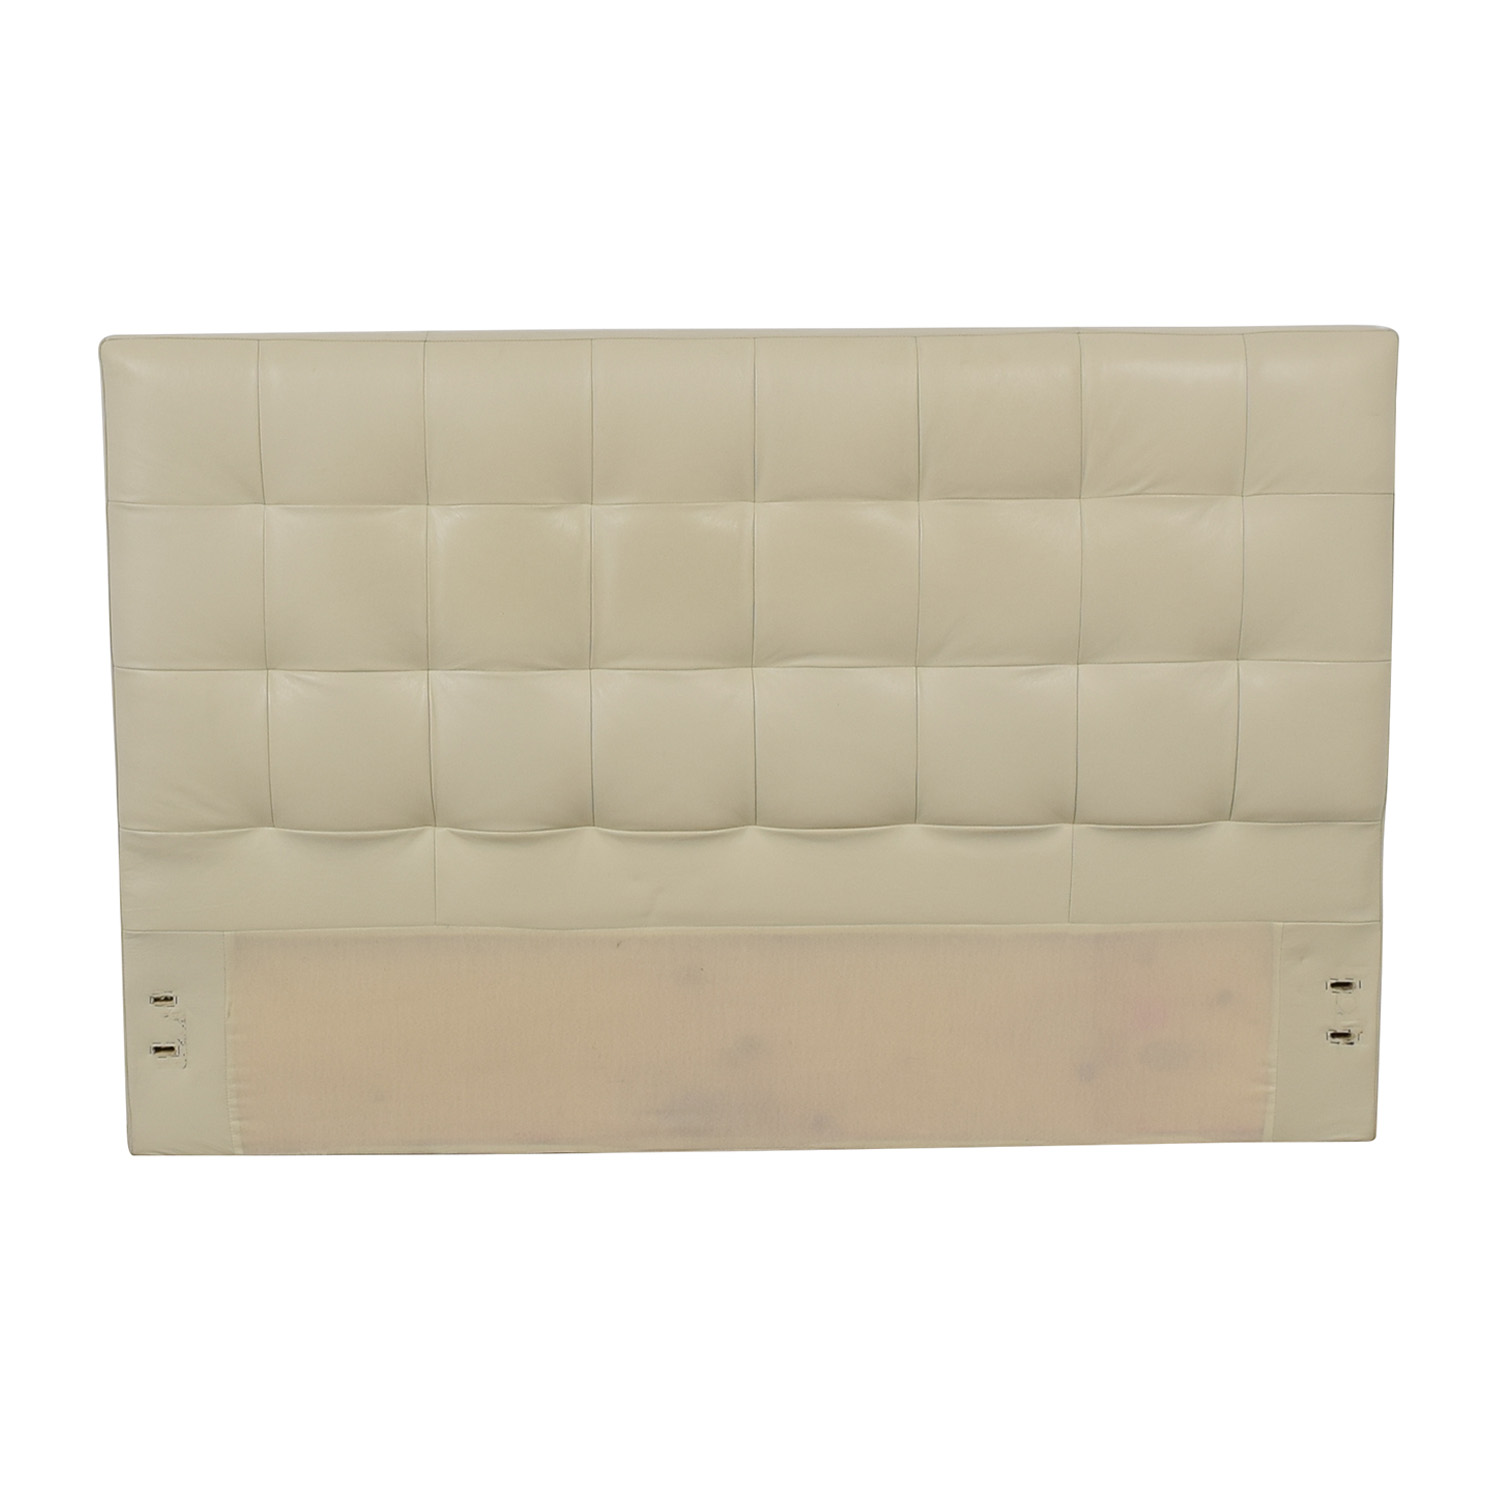 West Elm Low Leather Grid-Tufted Headboard / Beds